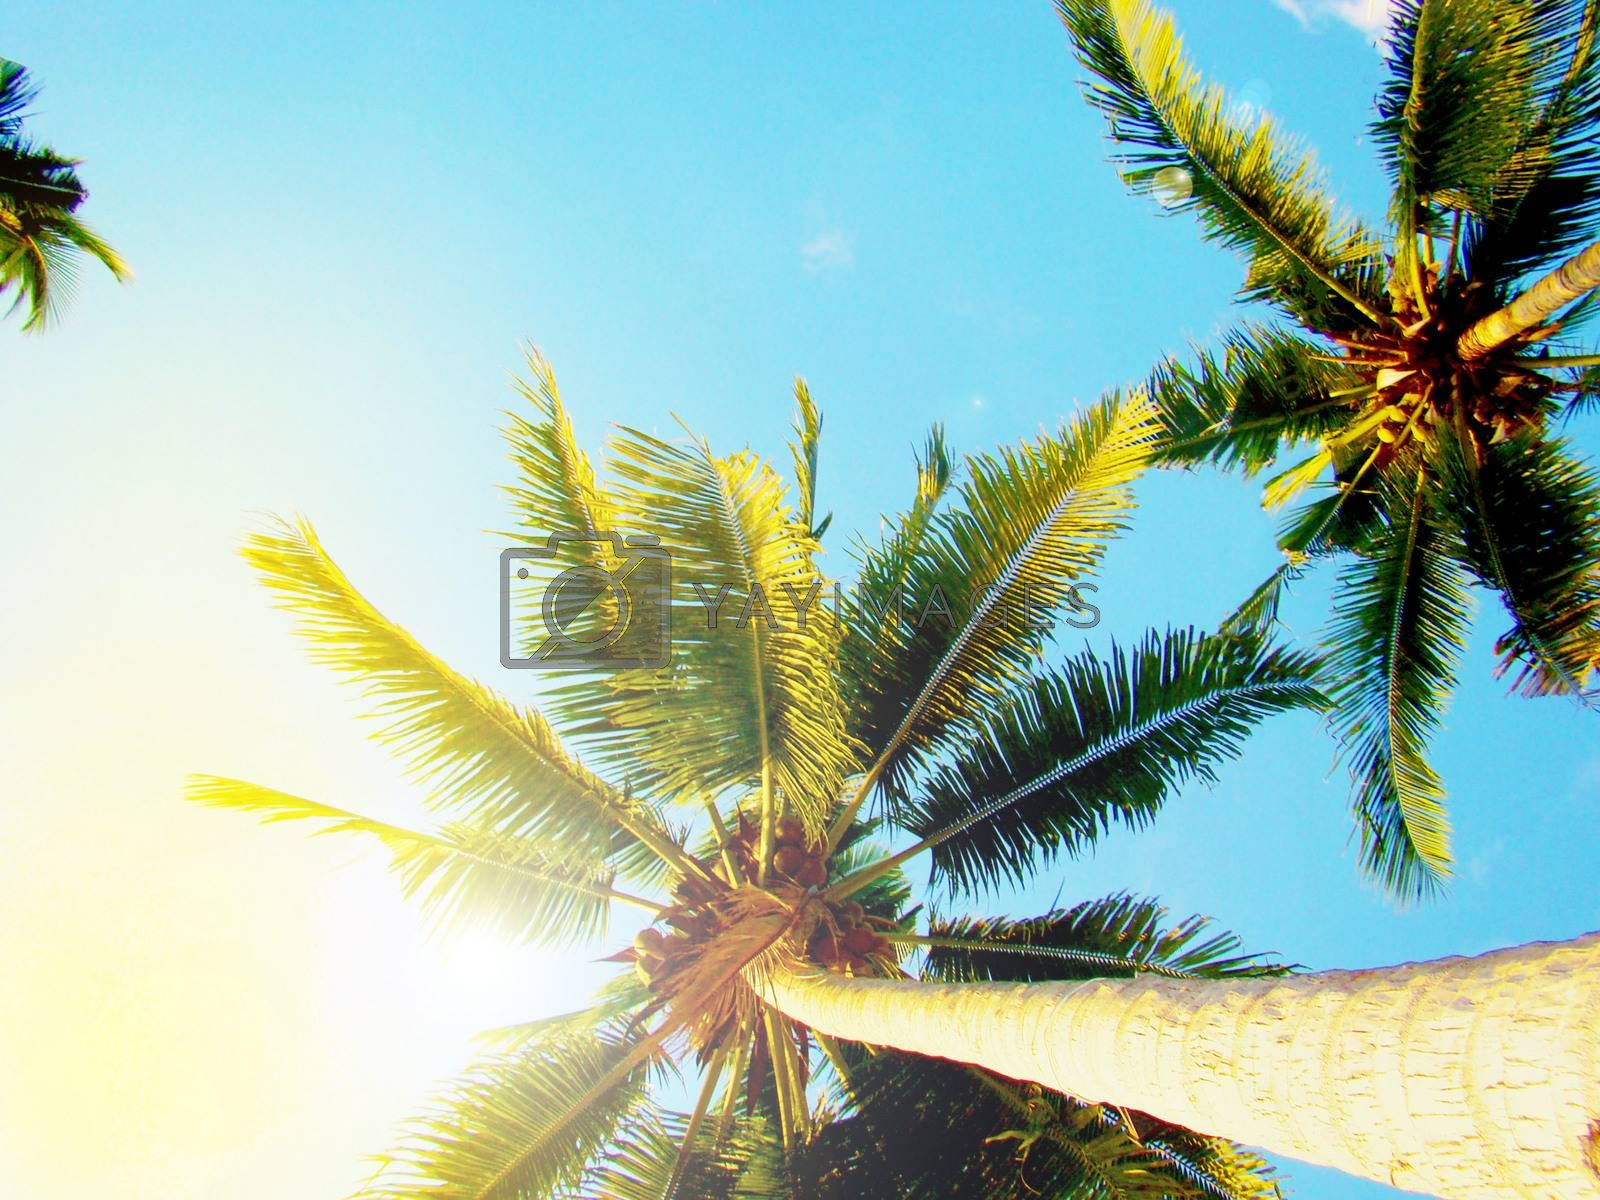 Tropical palm tree, bottom view, against blue sky and bright sunlight.